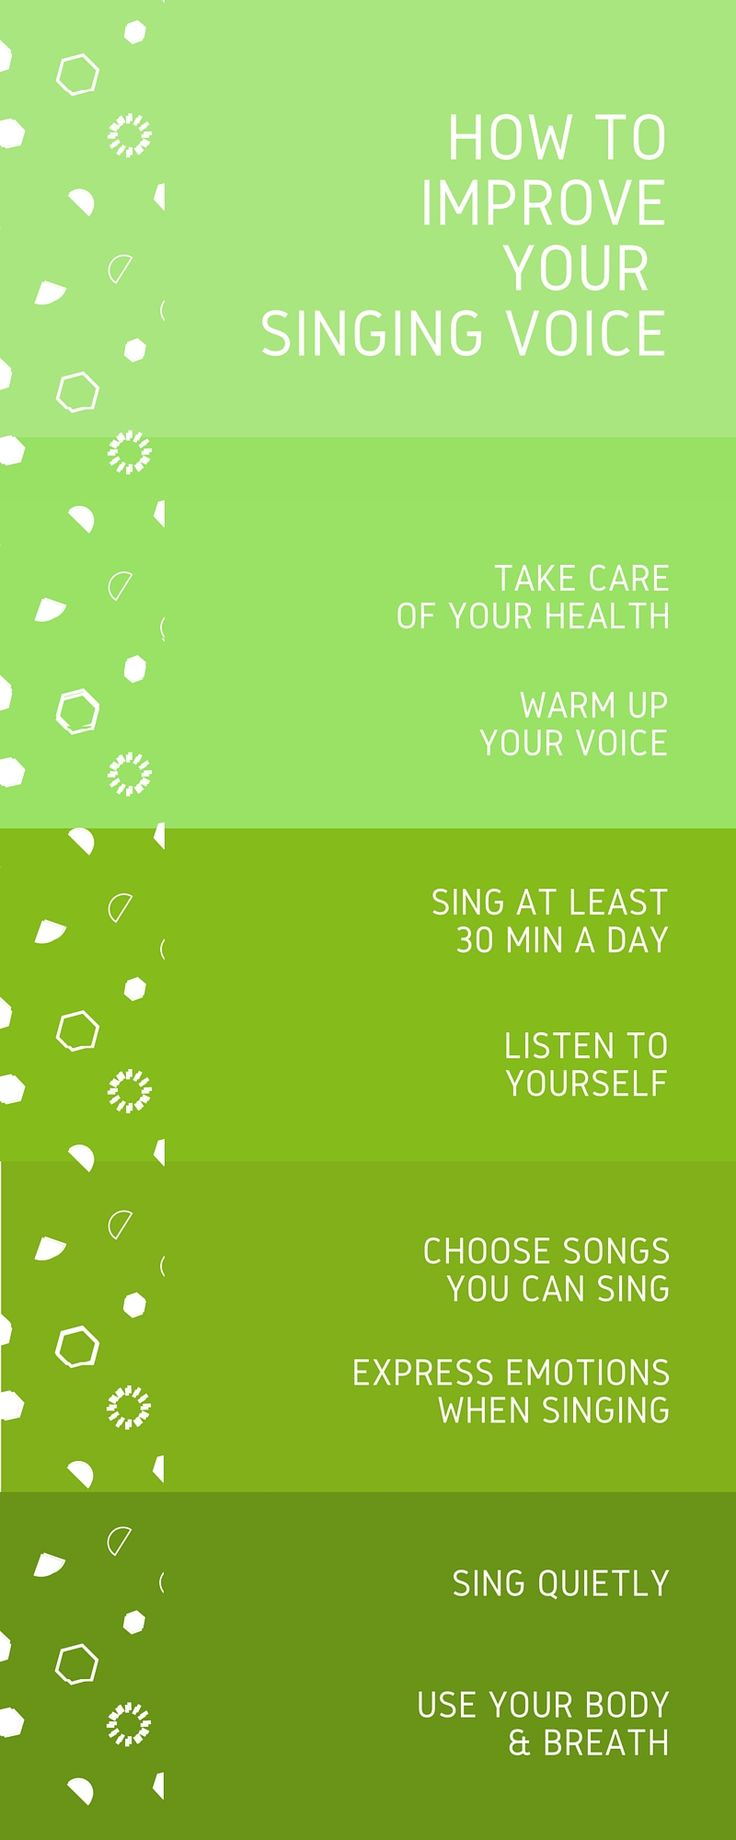 How to improve your voice as a singer? Here are the best 8 steps to take.